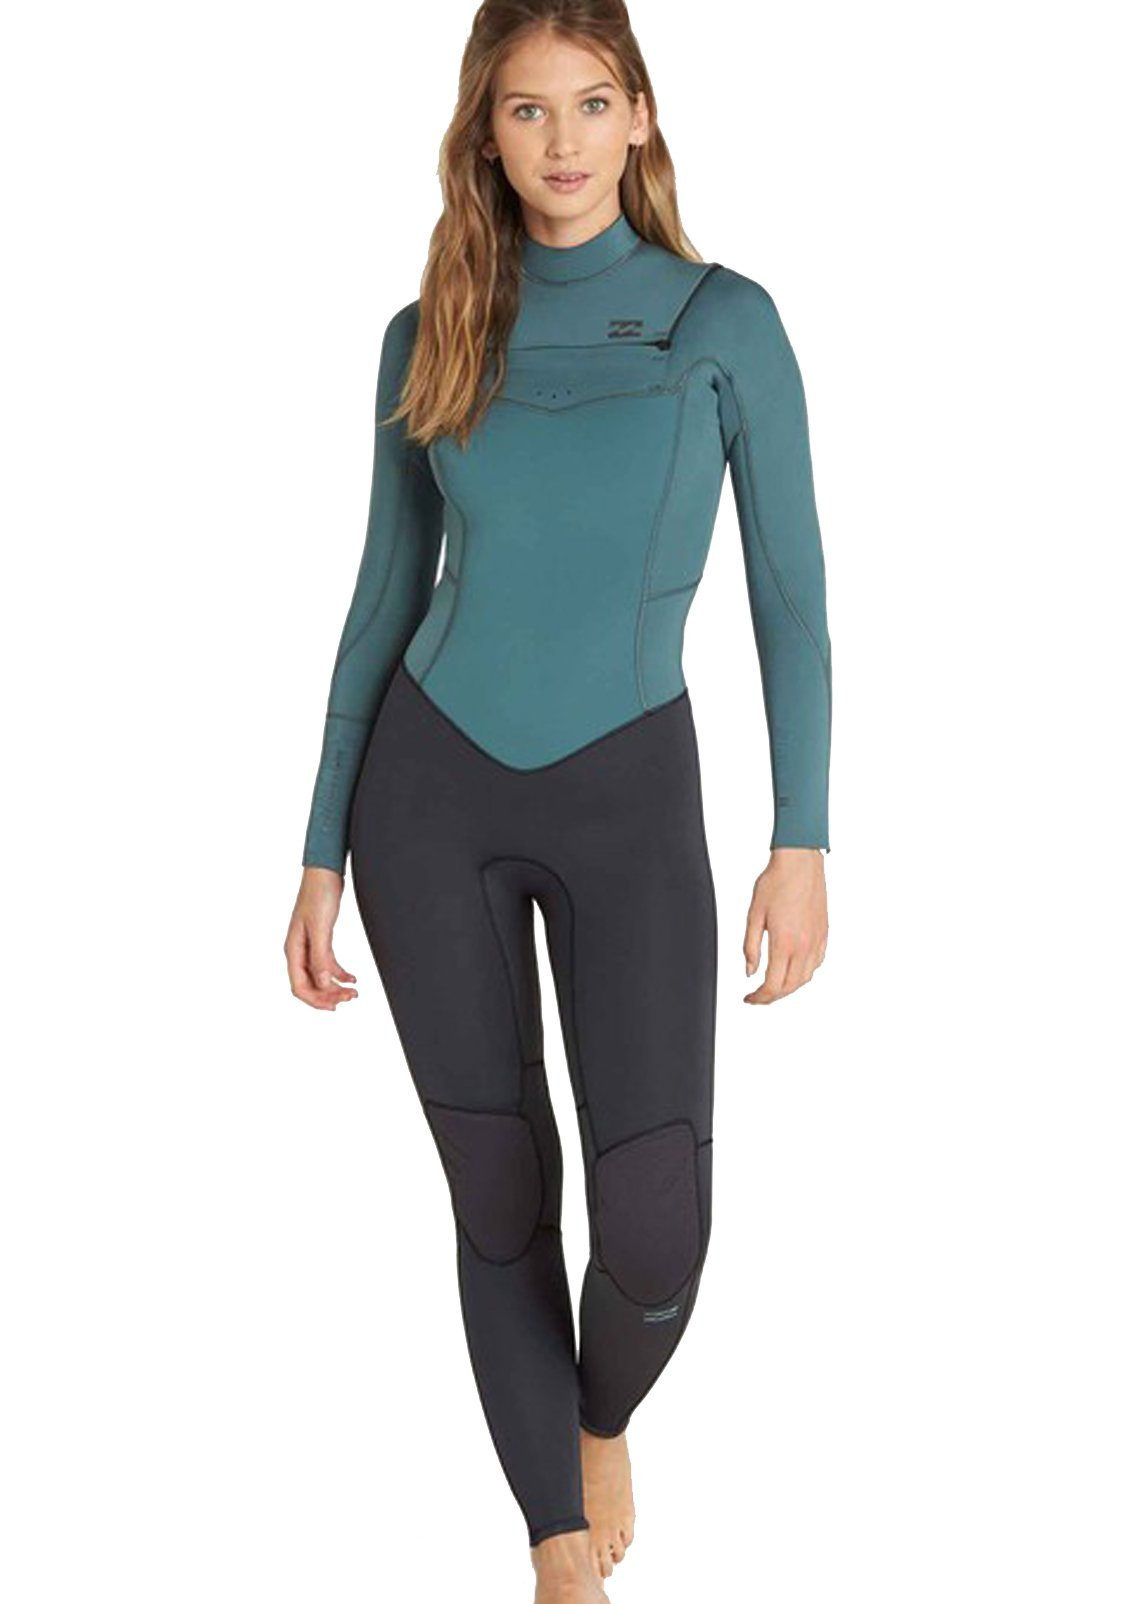 Billabong 3 2 Furnace Synergy CZ Wetsuit – Jacks Surfboards 120a59954